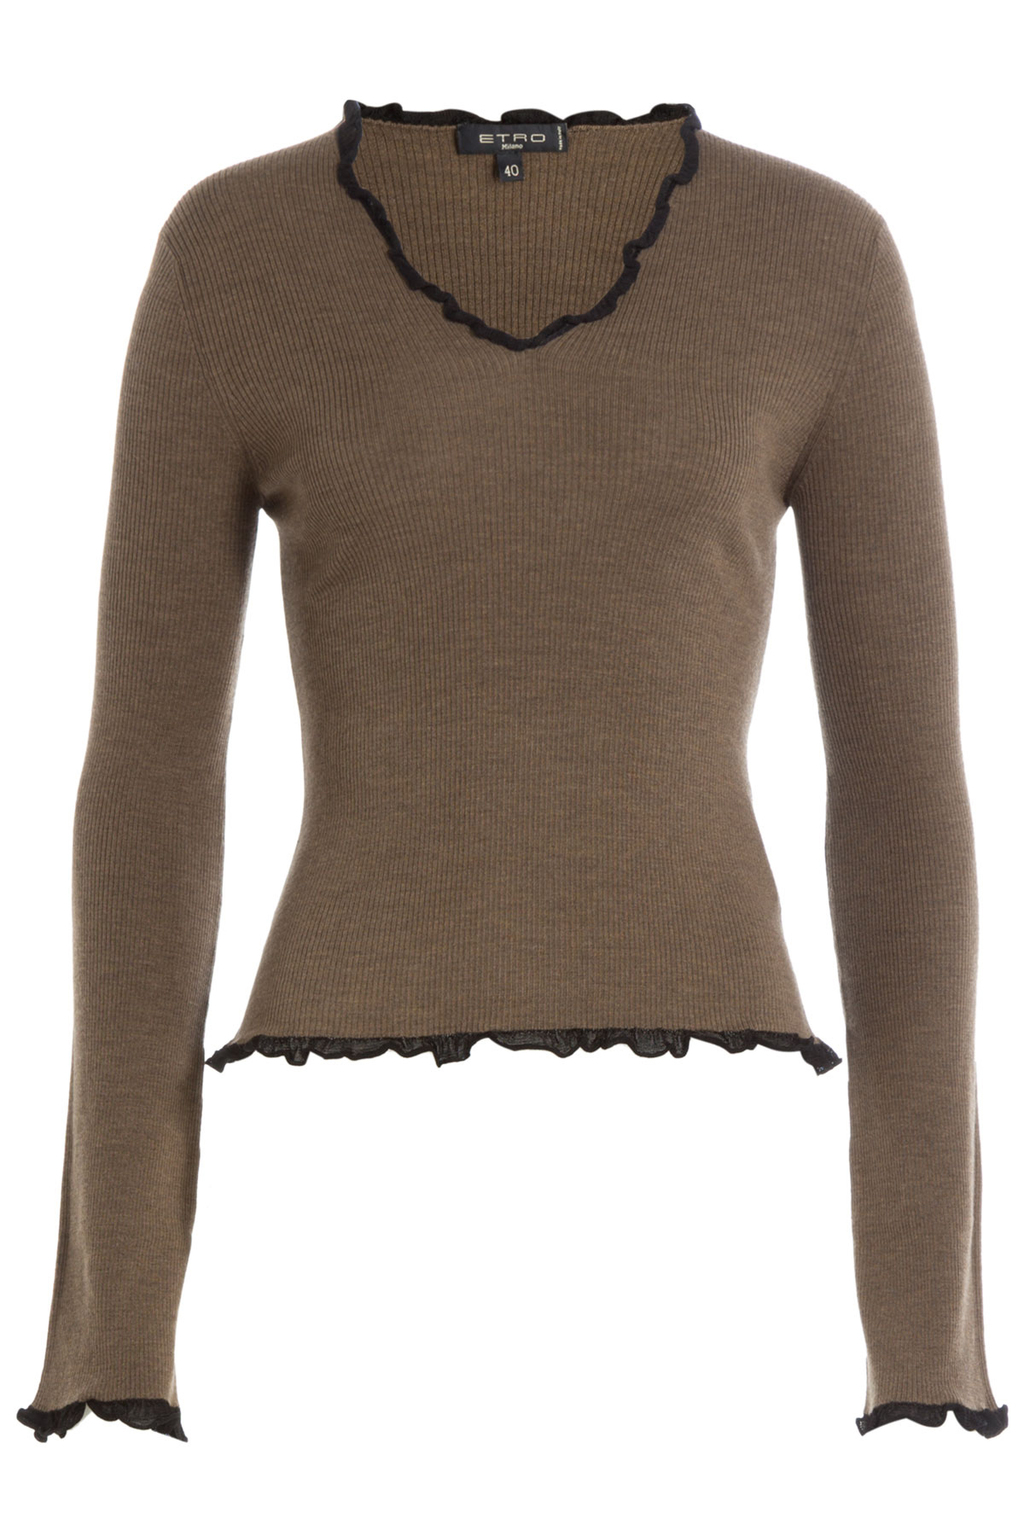 Wool Top With Ruffled Trim - neckline: v-neck; pattern: plain; predominant colour: mid grey; secondary colour: black; occasions: casual; length: standard; style: top; fibres: wool - 100%; fit: body skimming; sleeve length: long sleeve; sleeve style: standard; texture group: knits/crochet; pattern type: fabric; multicoloured: multicoloured; season: s/s 2016; wardrobe: basic